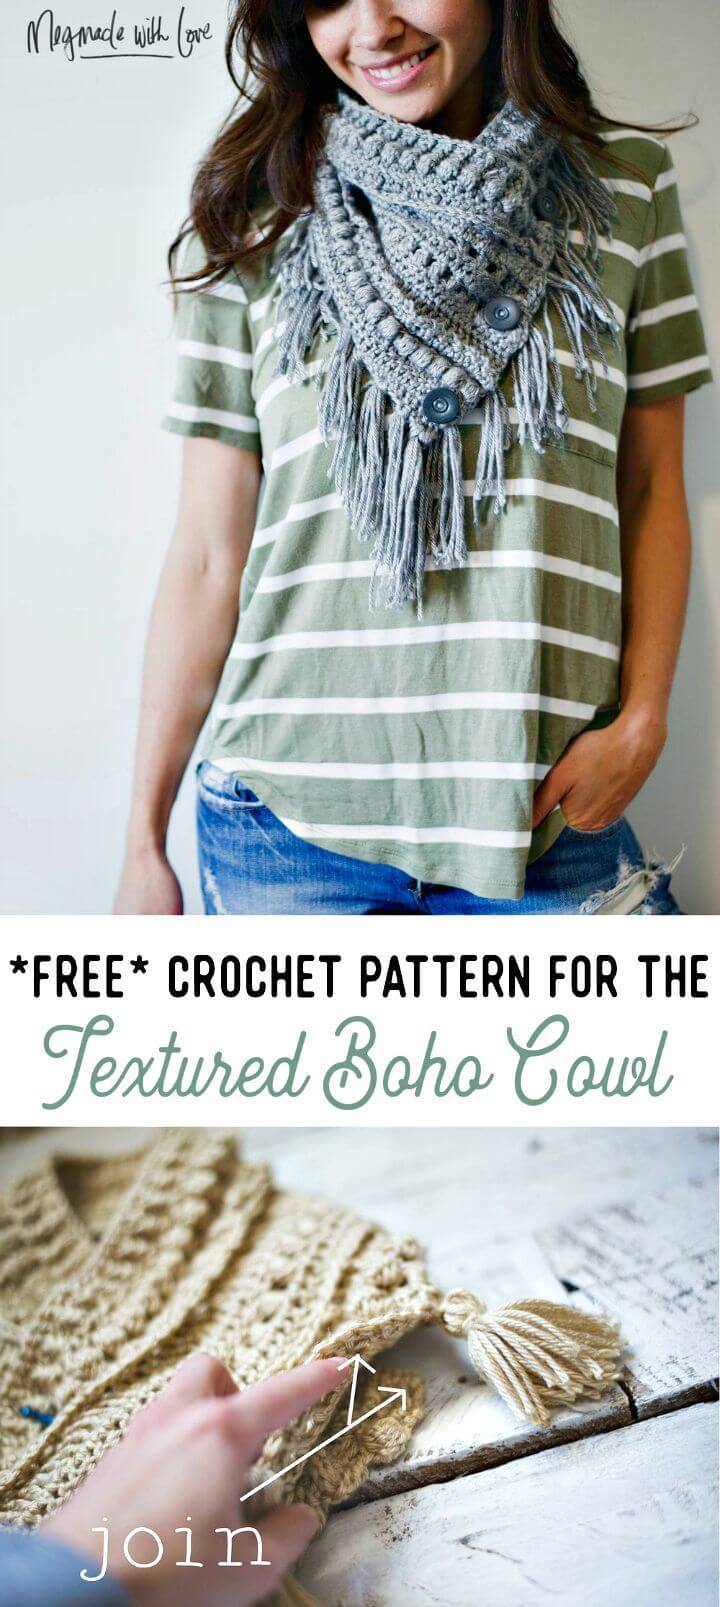 Free Crochet Textured Boho Cowl Pattern